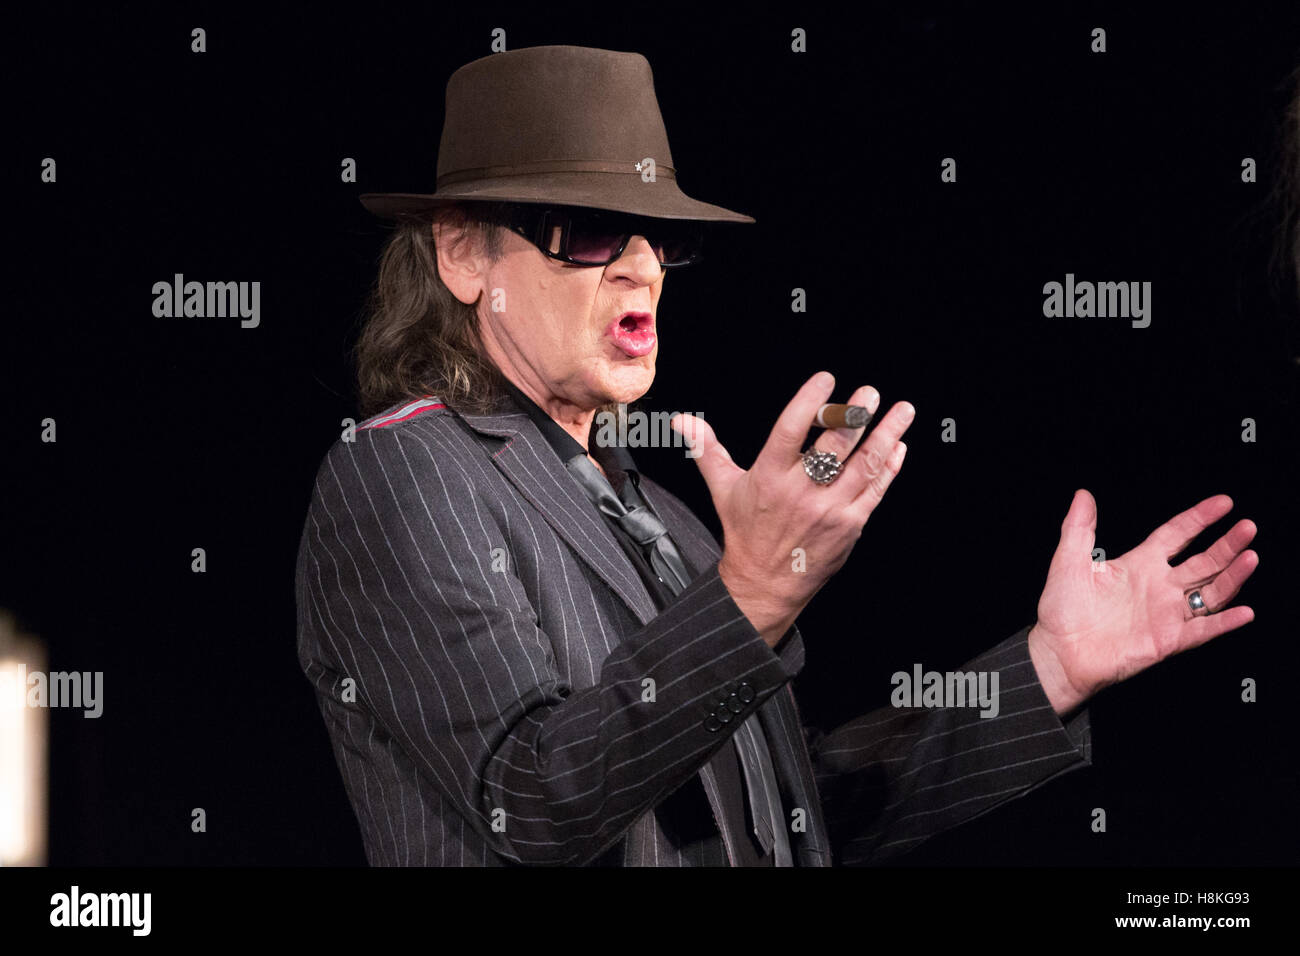 Hamburg, Germany. 11th Nov, 2016. The musician Udo Lindenberg sits on stage at the Operettenhaus at the Reeperbahn - Stock Image